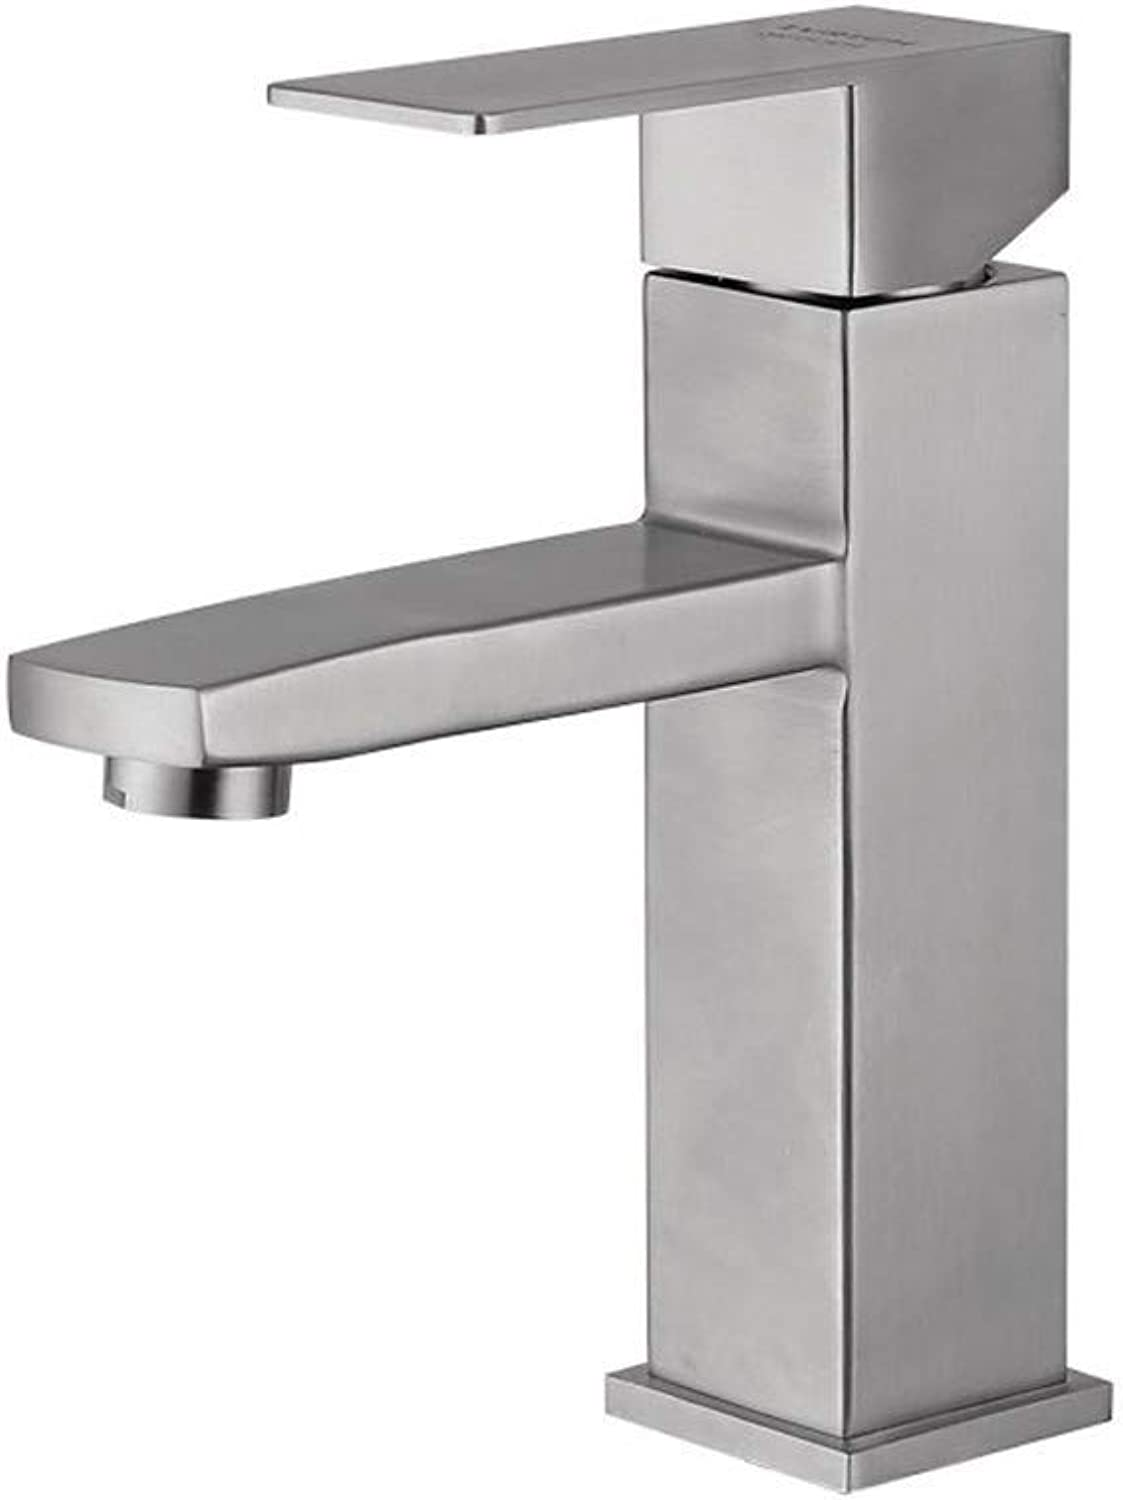 FuweiEncore 304 Stainless Steel Square Body Brushed Basin Faucet Bathroom Single Short Paragraph Hot and Cold Faucet (color   -, Size   -)